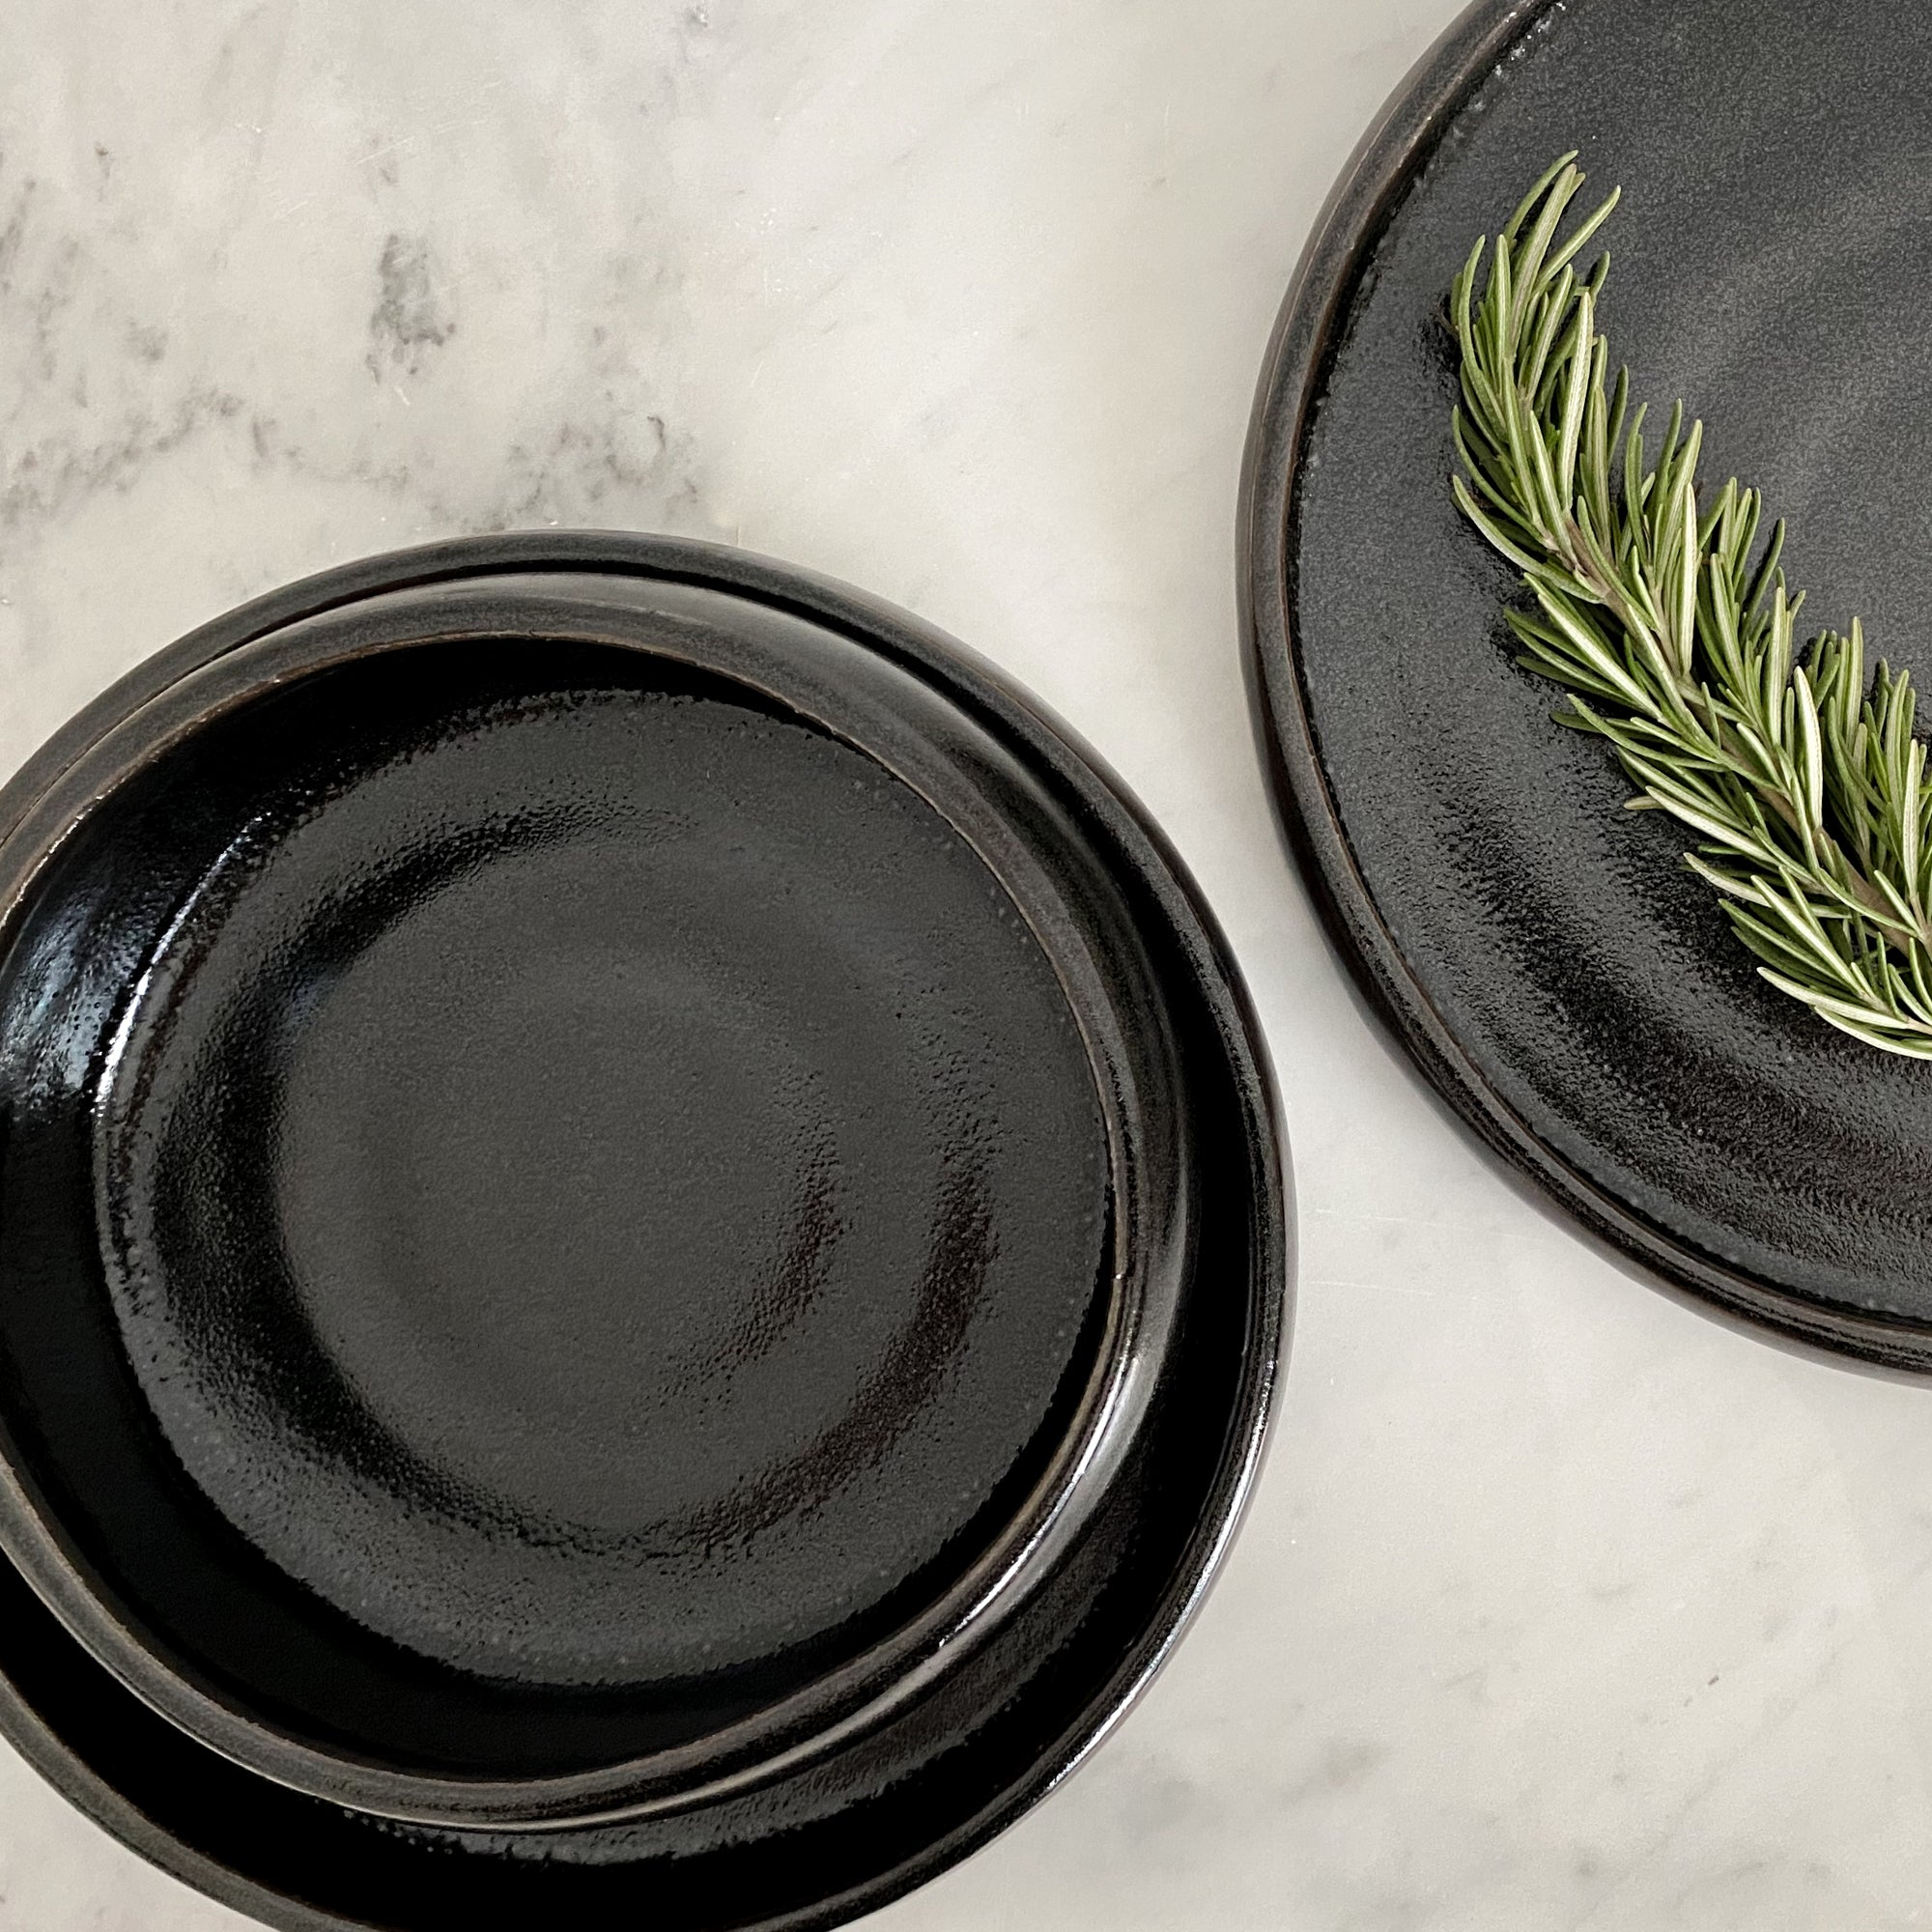 A marble counter with a black stoneware dinner set including a salad plate, dinner plate and nested bowl.